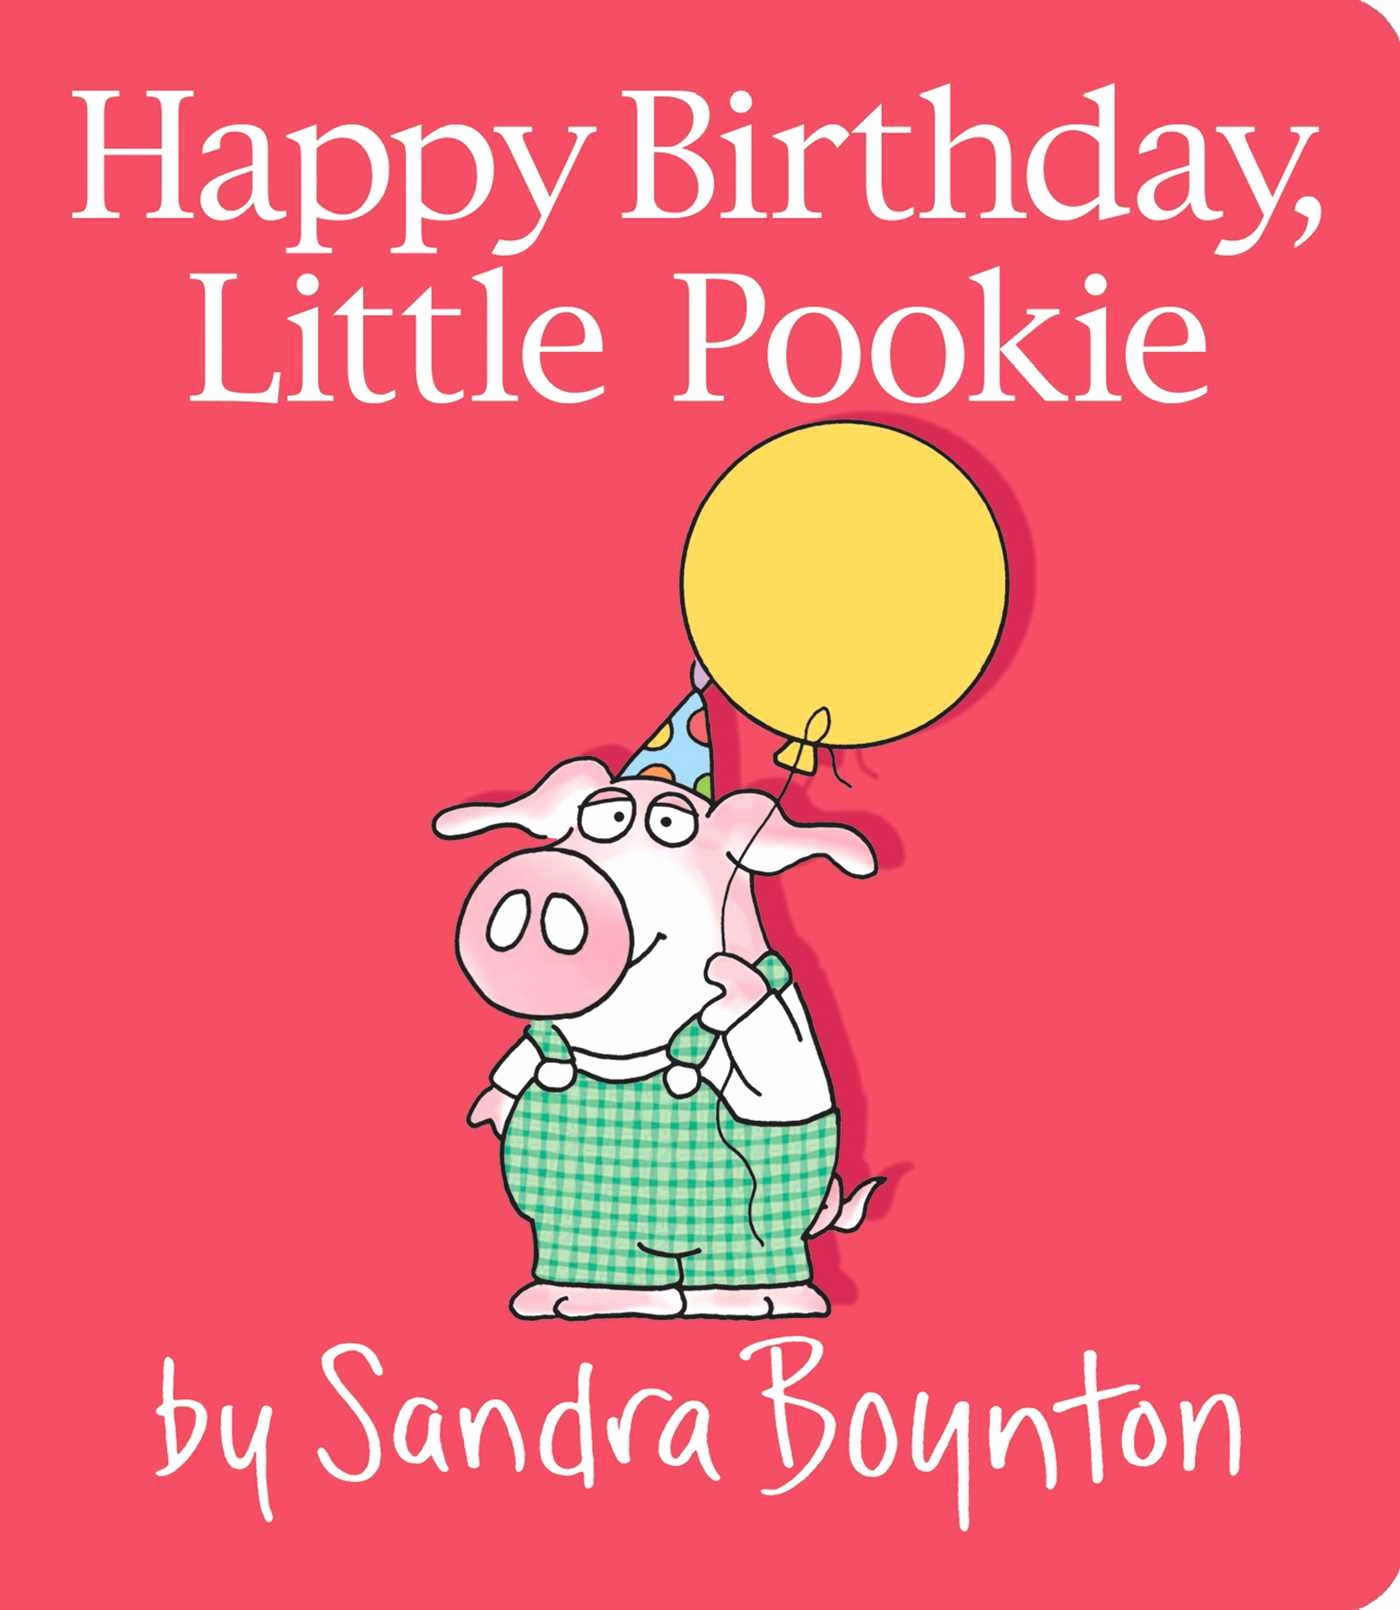 bea arthur birthday card ; bruce-campbell-birthday-card-inspirational-happy-birthday-little-pookie-book-by-sandra-boynton-of-bruce-campbell-birthday-card